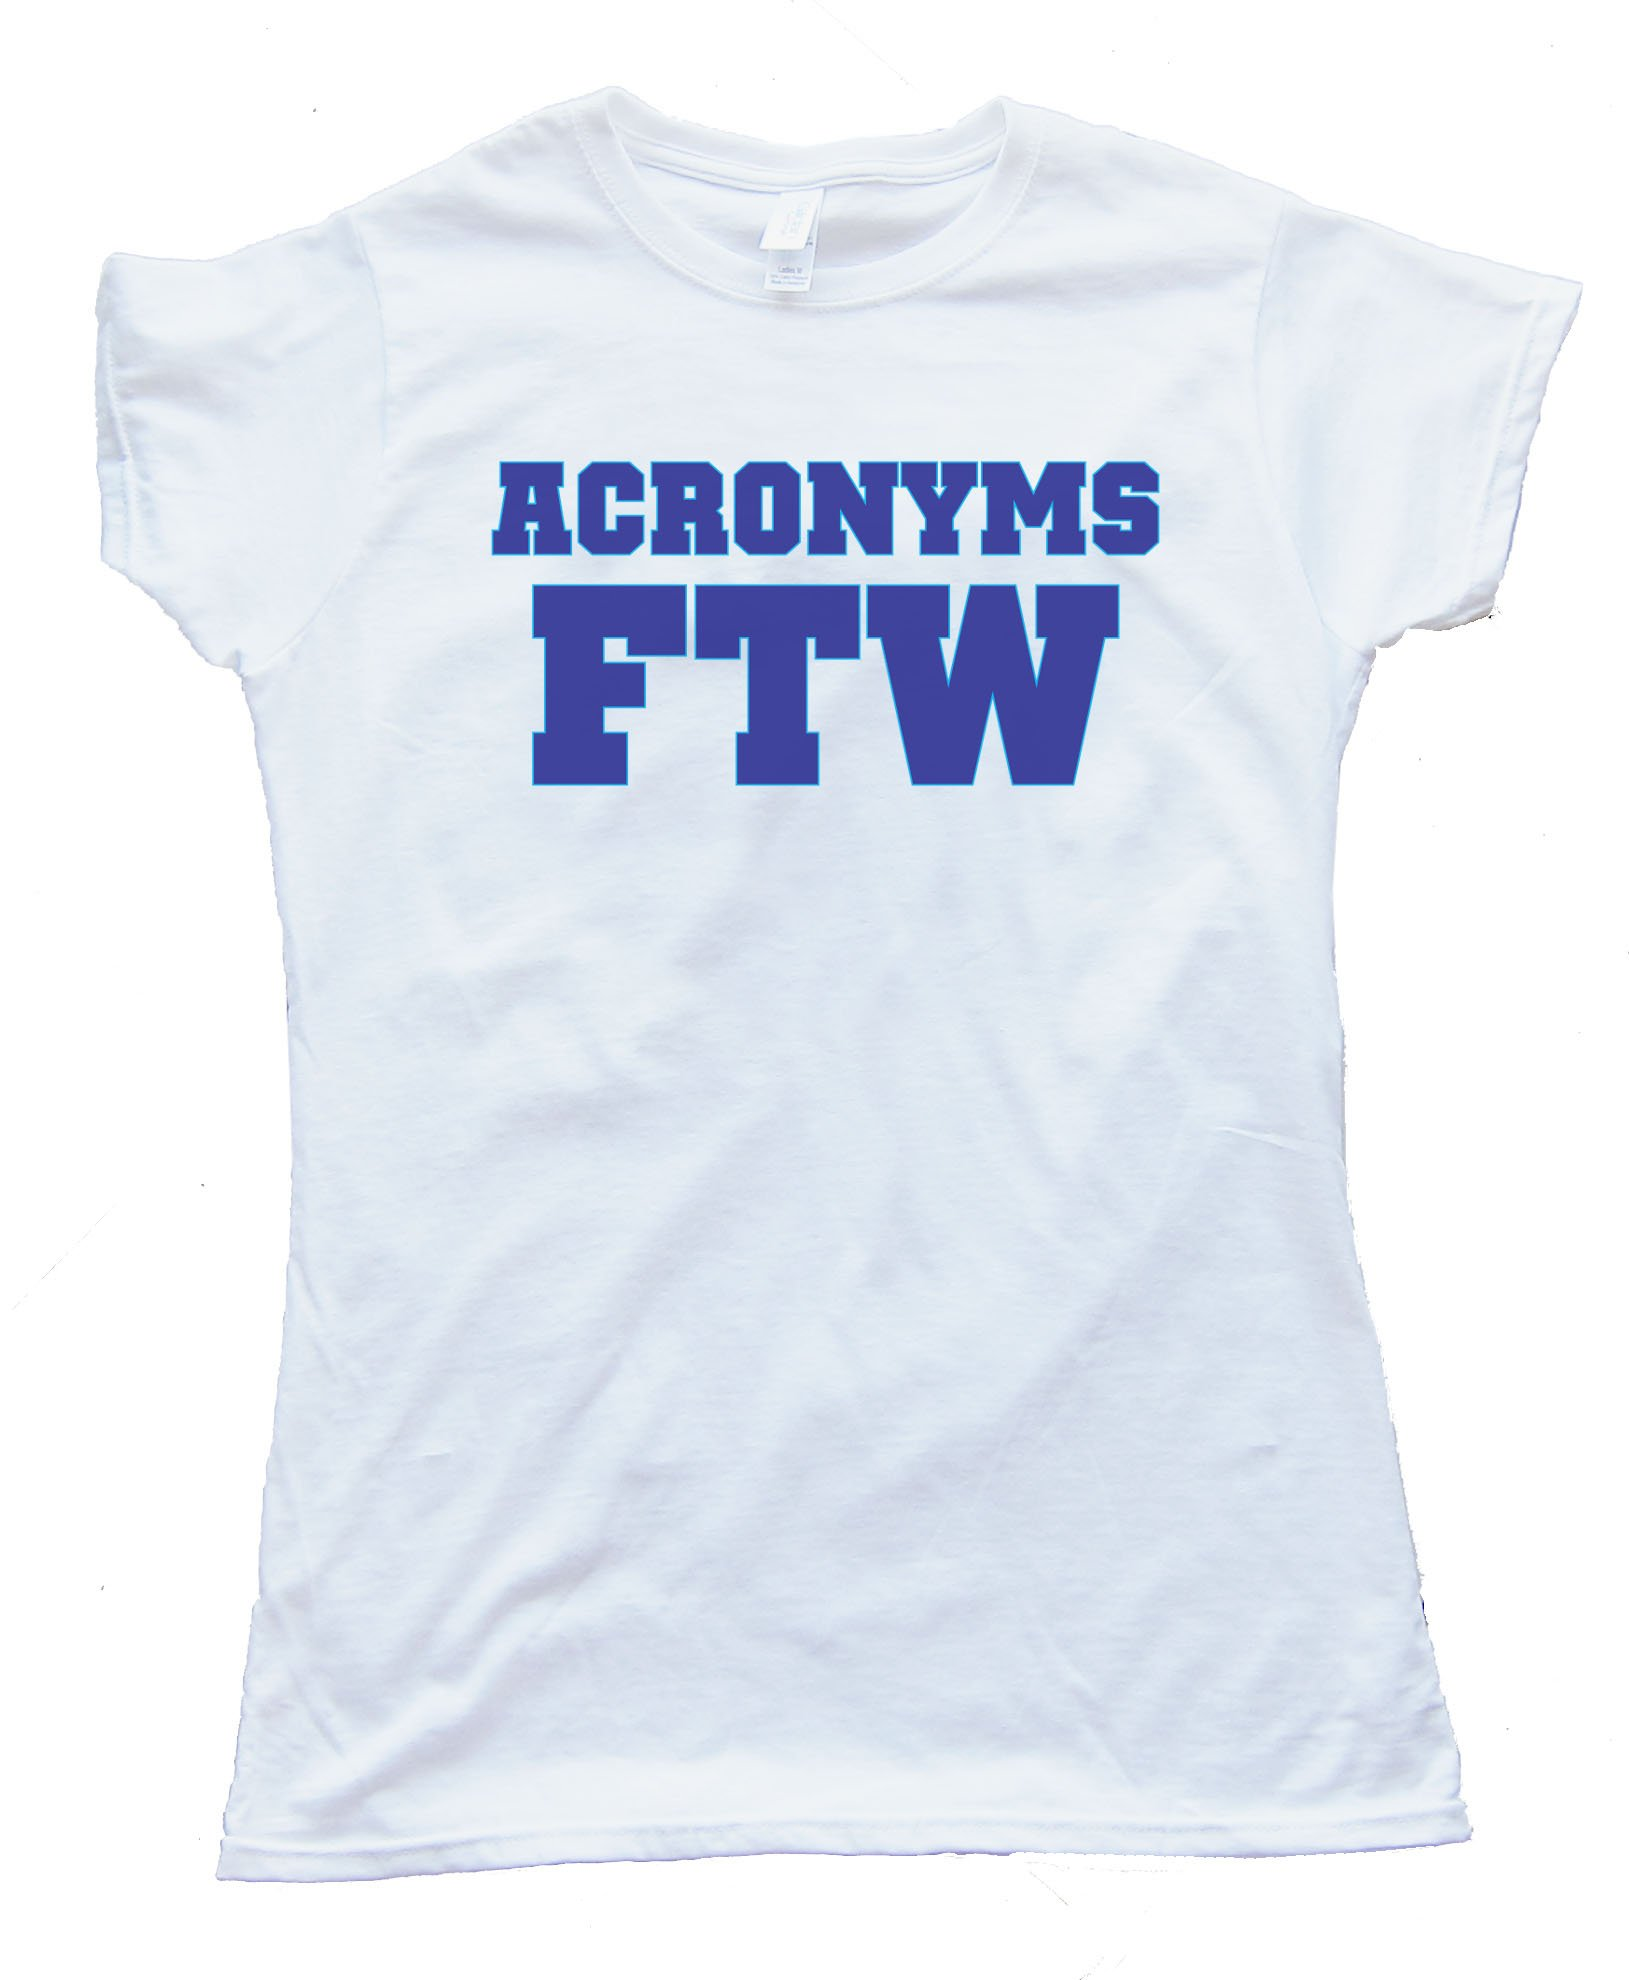 Womens Acronyms Ftw - For The Win - Tee Shirt